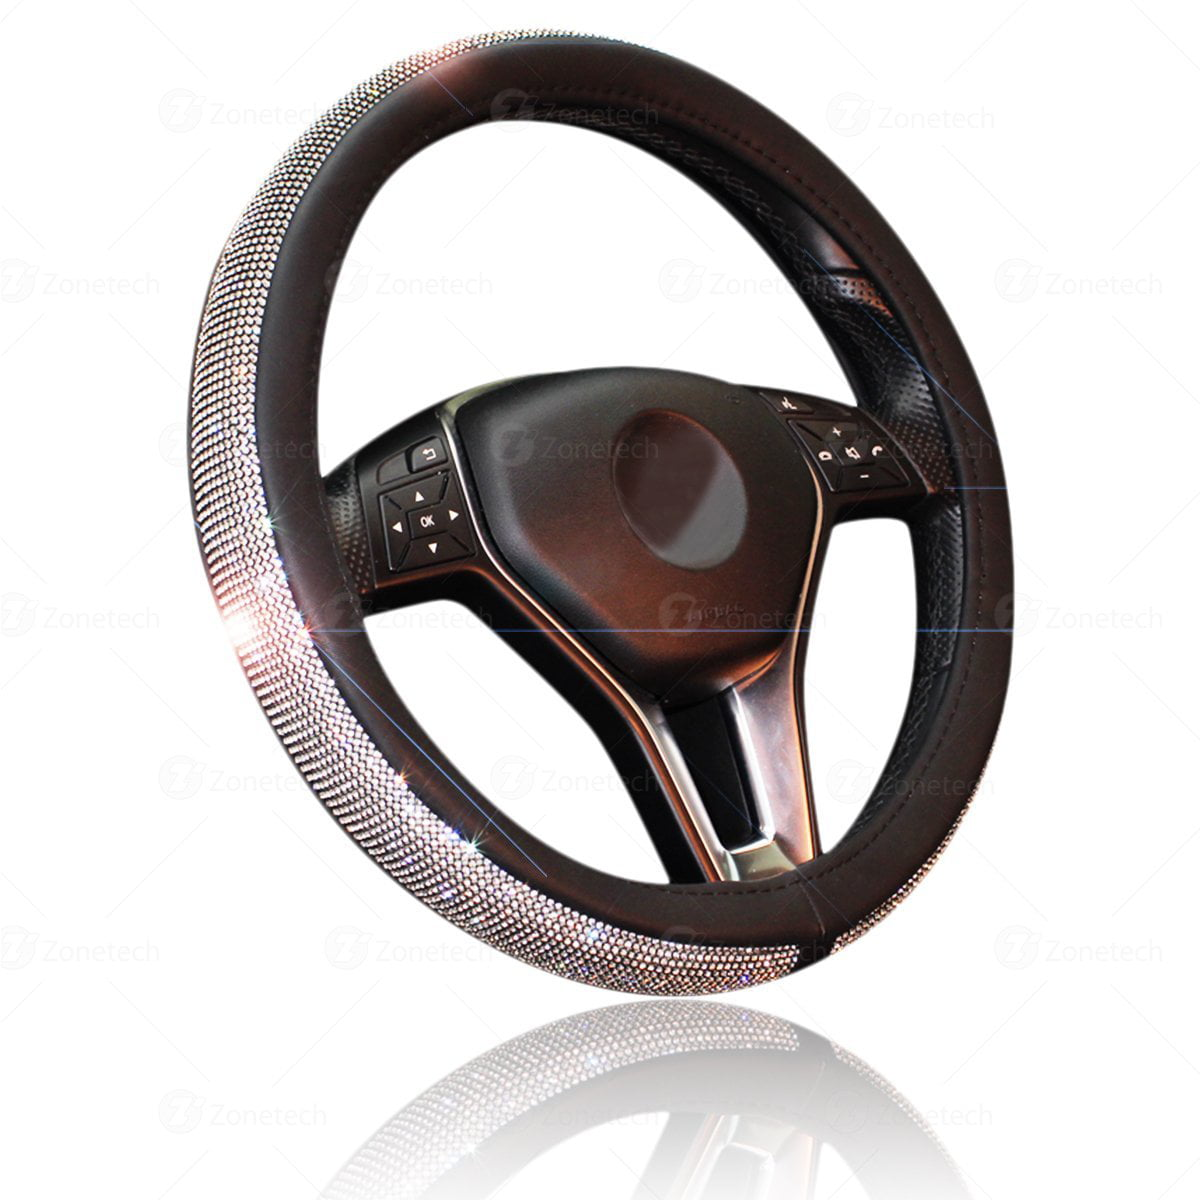 Zone Tech Shiny Bling Steering Wheel Cover Crystal Steering Wheel Cover With Pu Leather Backing Walmart Com Walmart Com